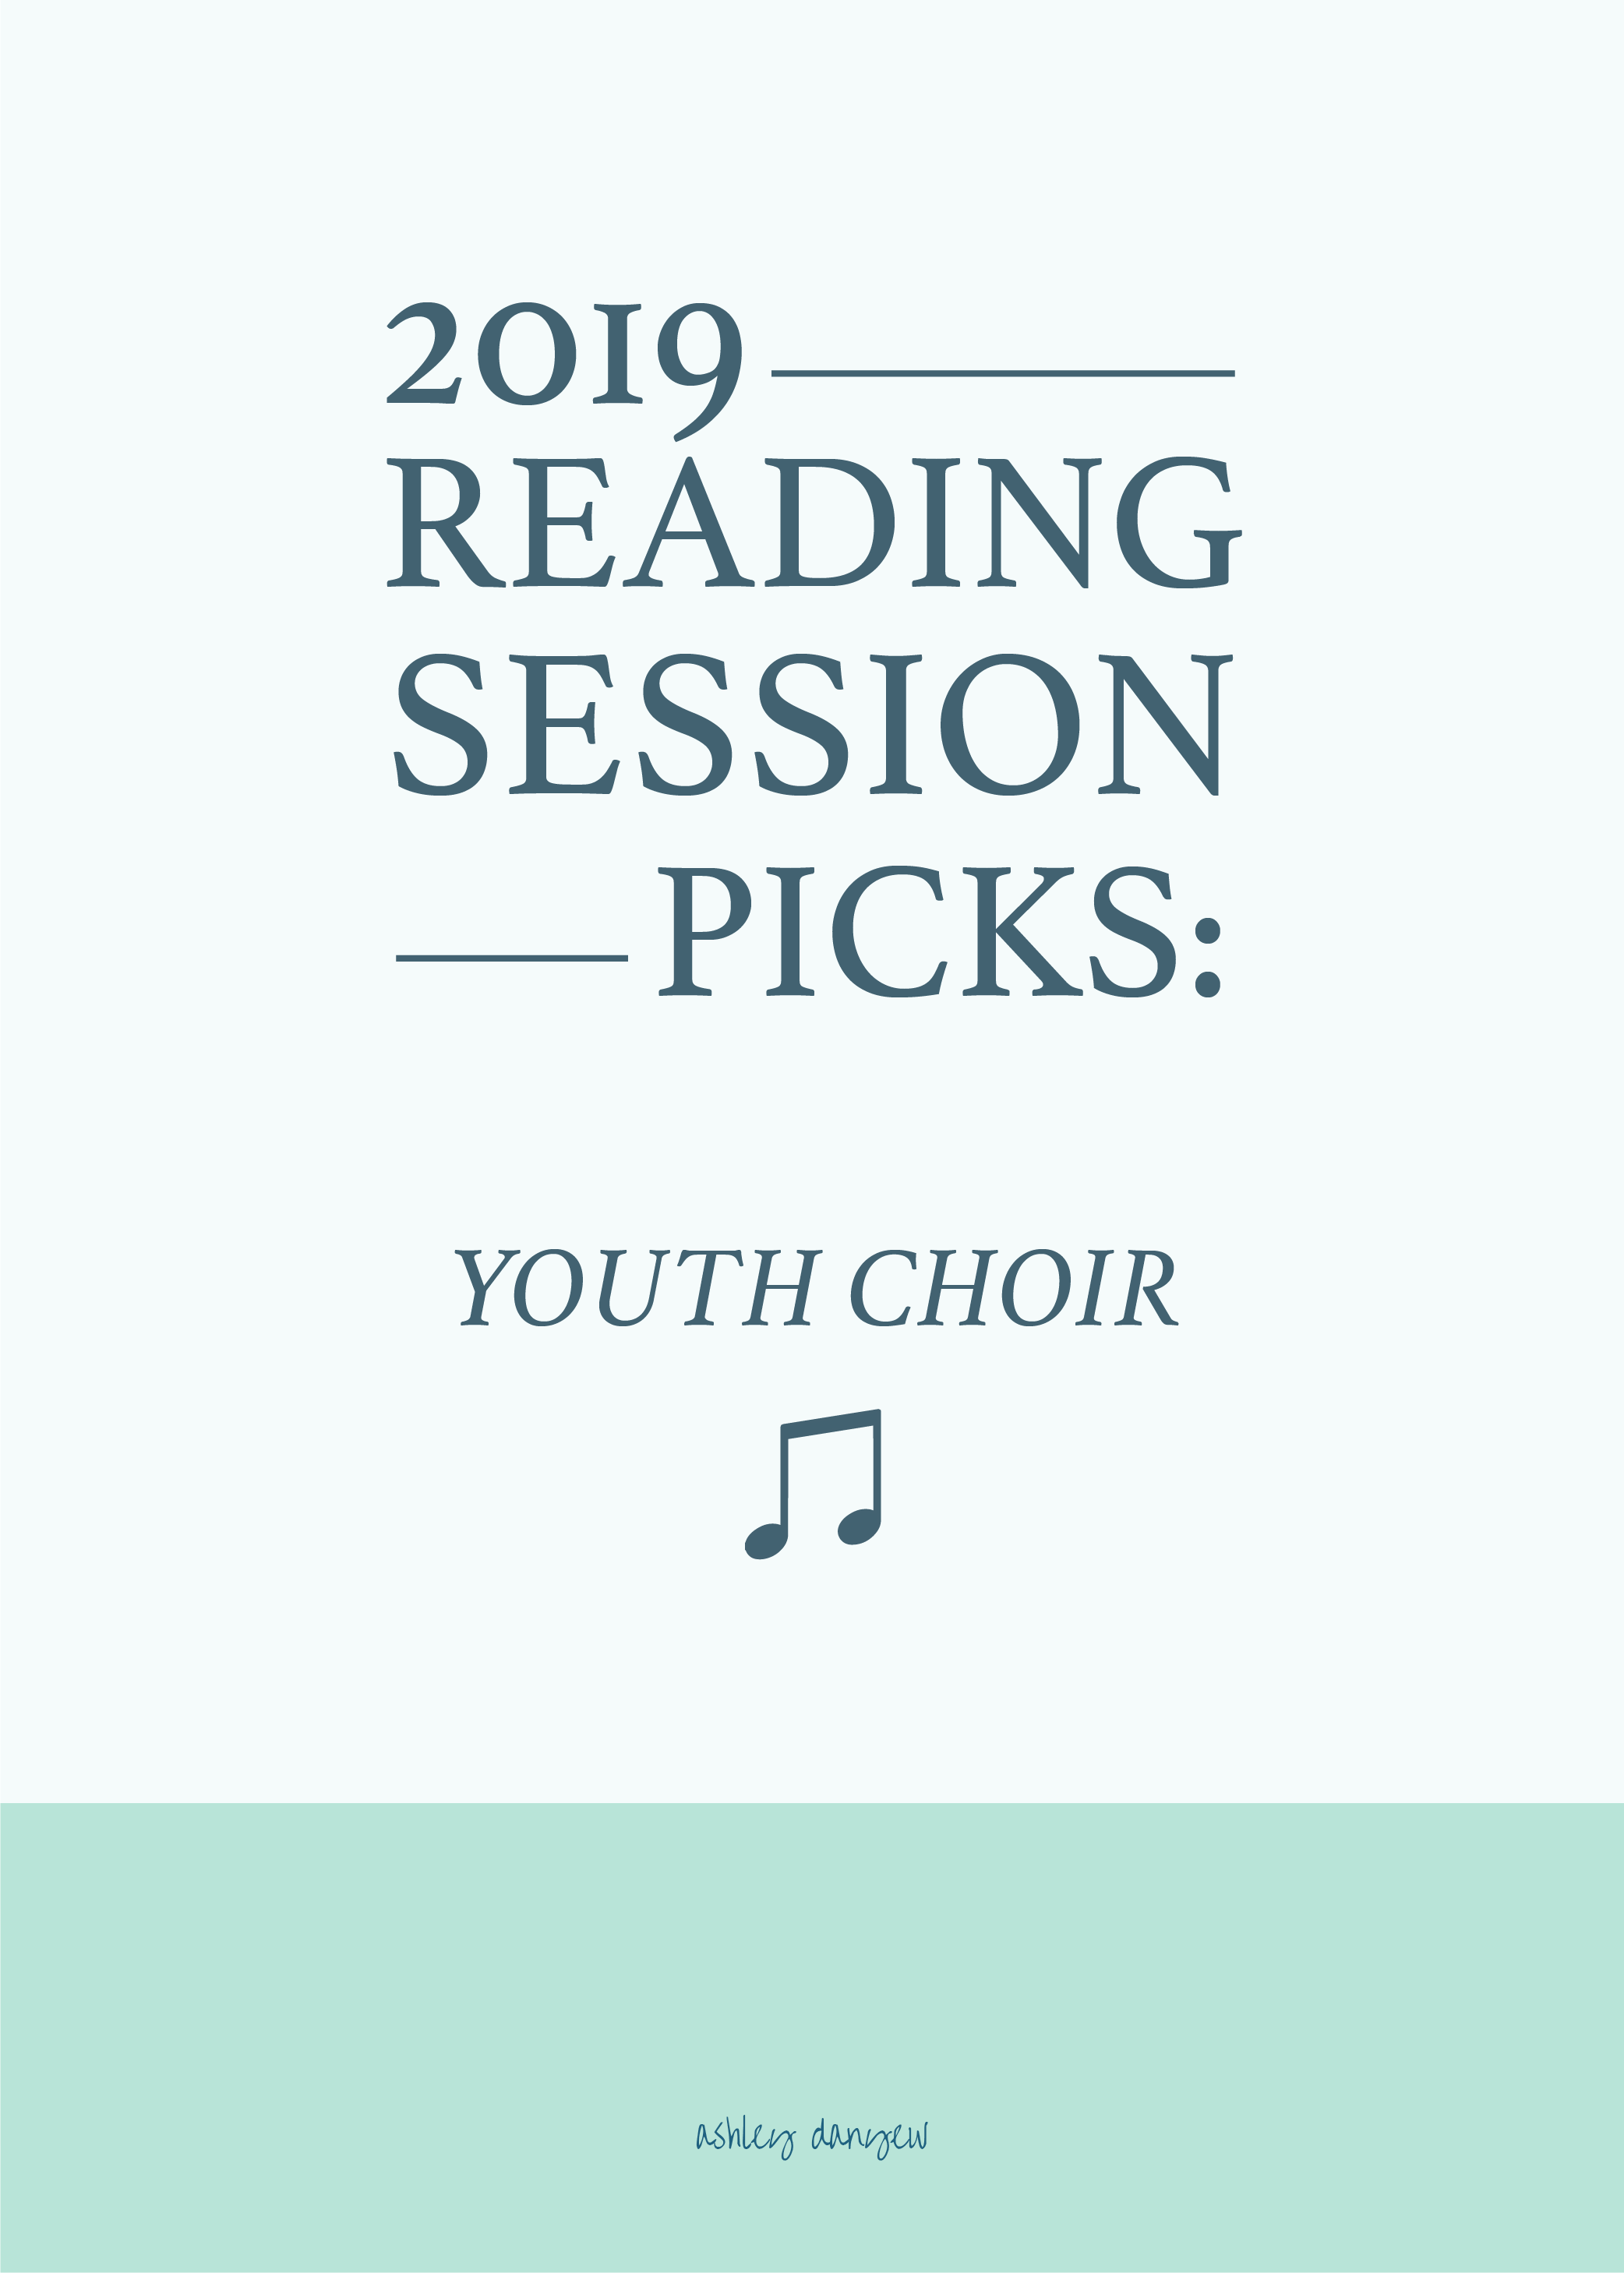 2019 Reading Session Picks: Youth Choir